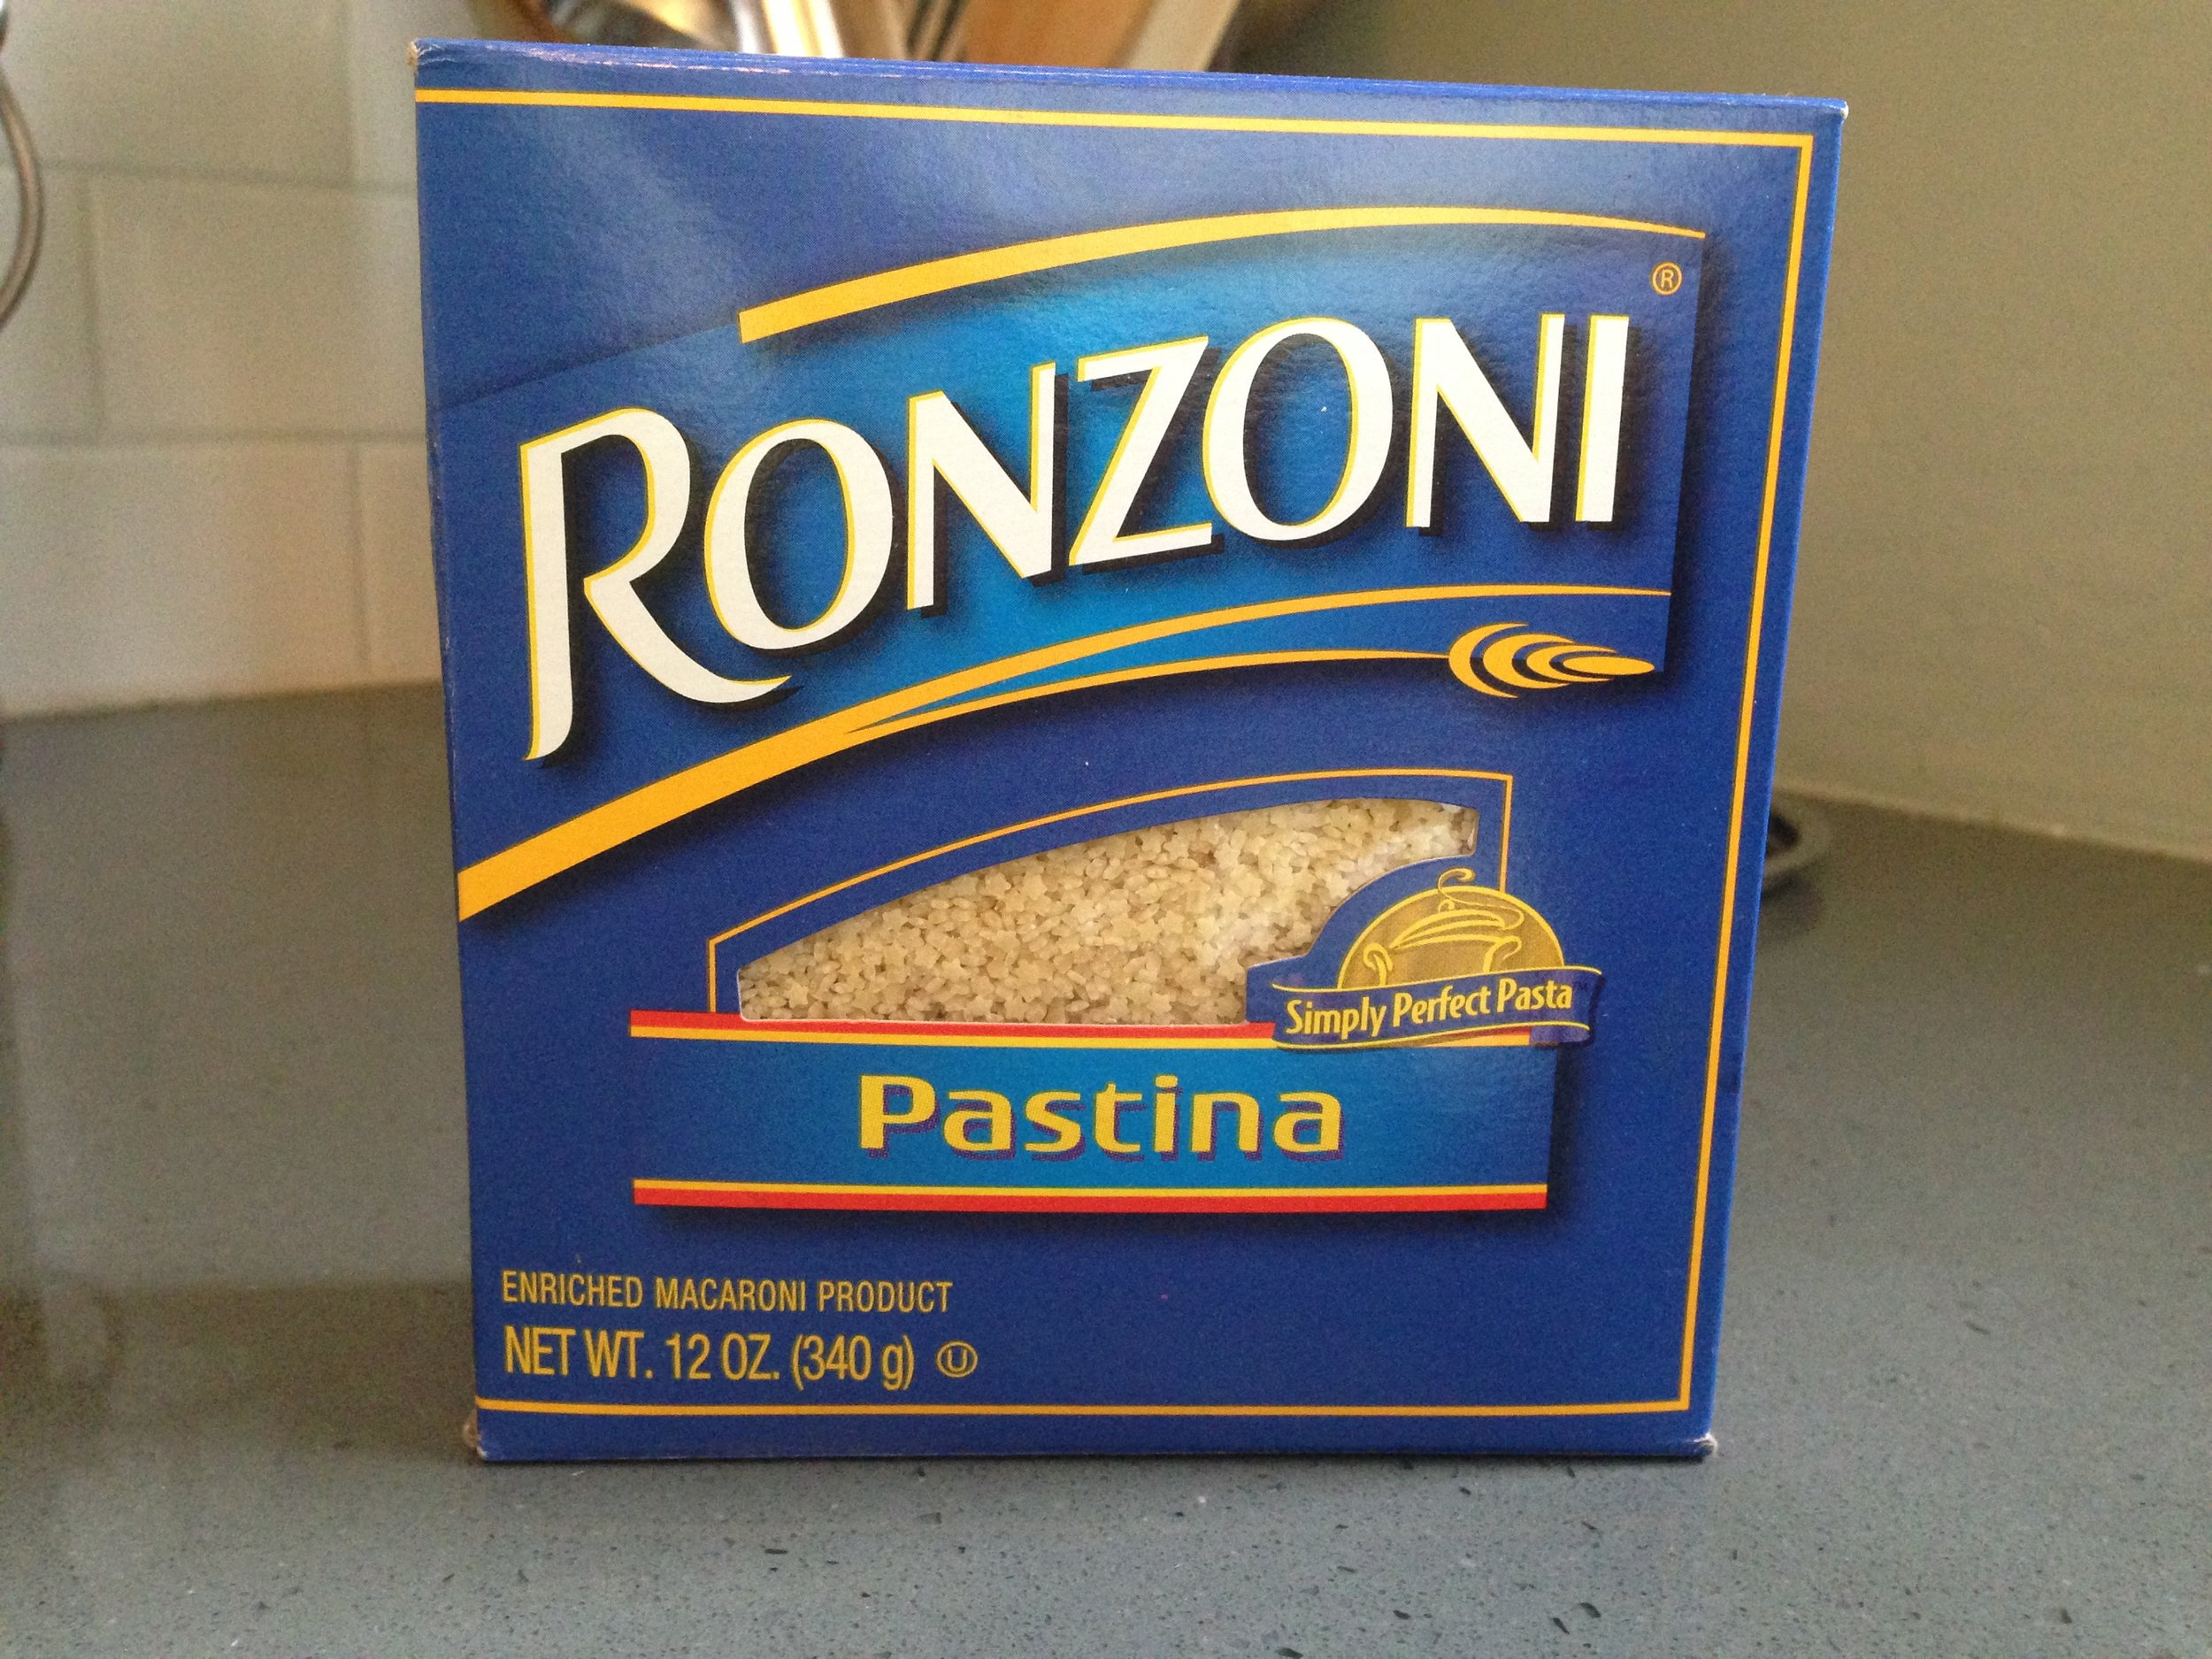 One of the few boxes of Pastina I brought home from our New Jersey visit.